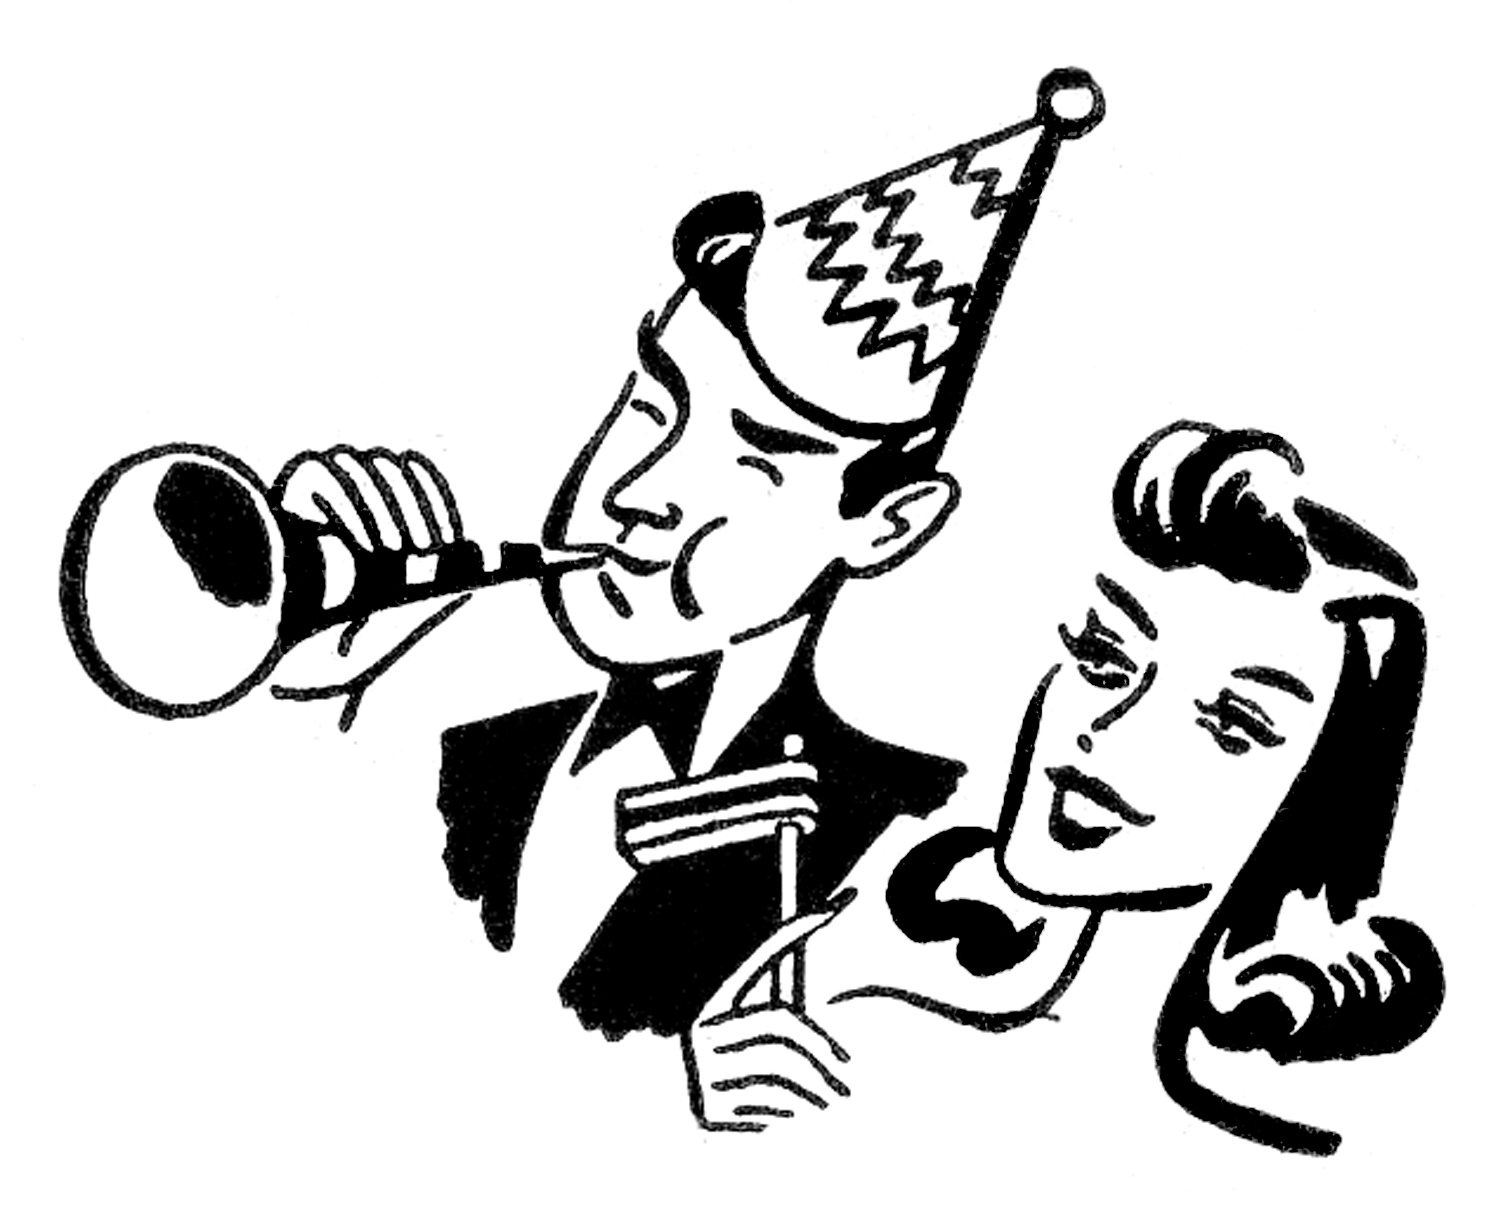 Party cliparts jpg black and white library Clip Art New Year's Eve Party Clipart - Clipart Kid jpg black and white library